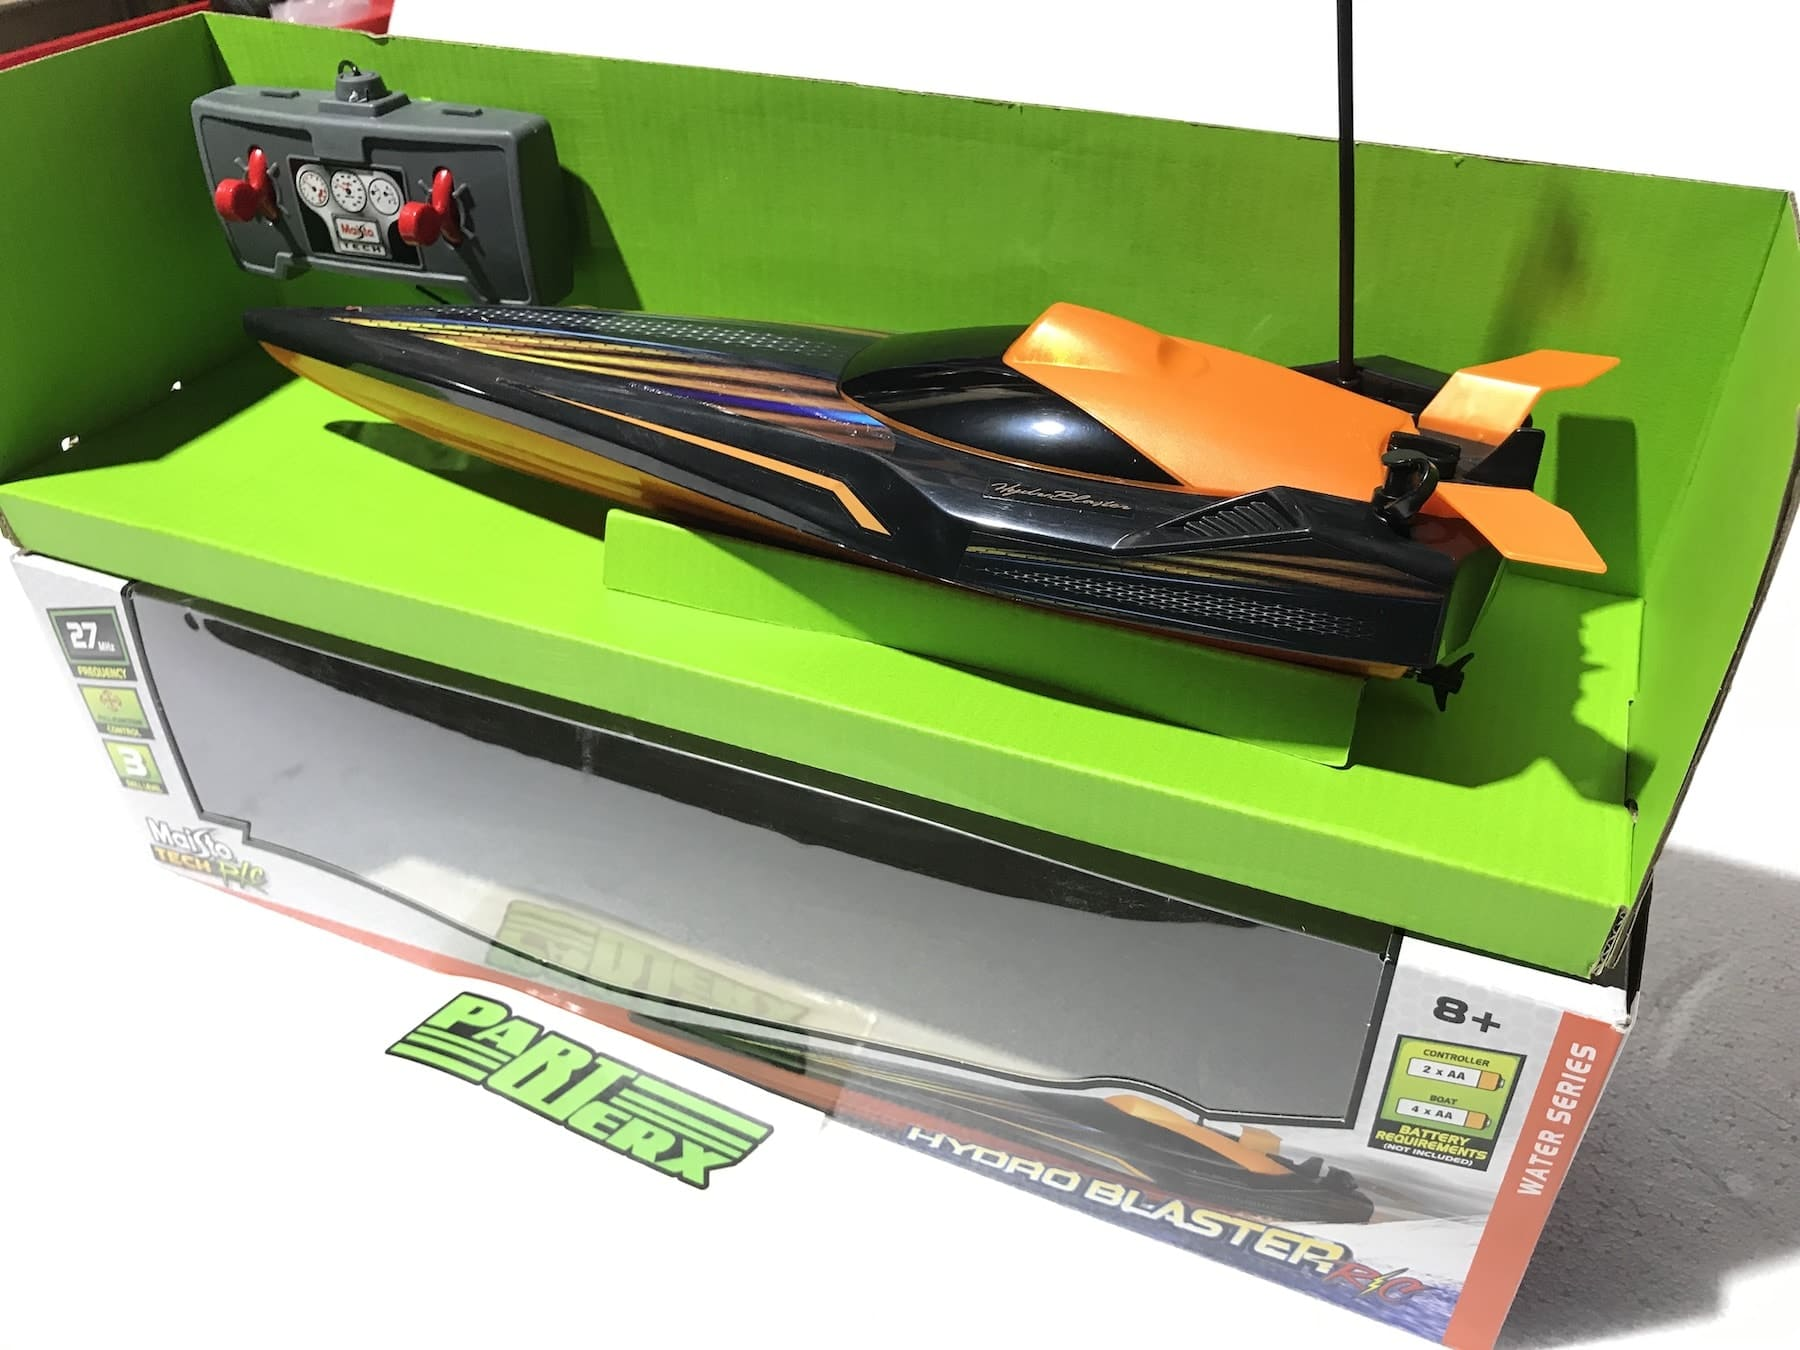 Speed Boat Hydro Blaster 1:24 RC Radio Controlled Model Boat Toy Christmas Gift Xmas Birthday Present